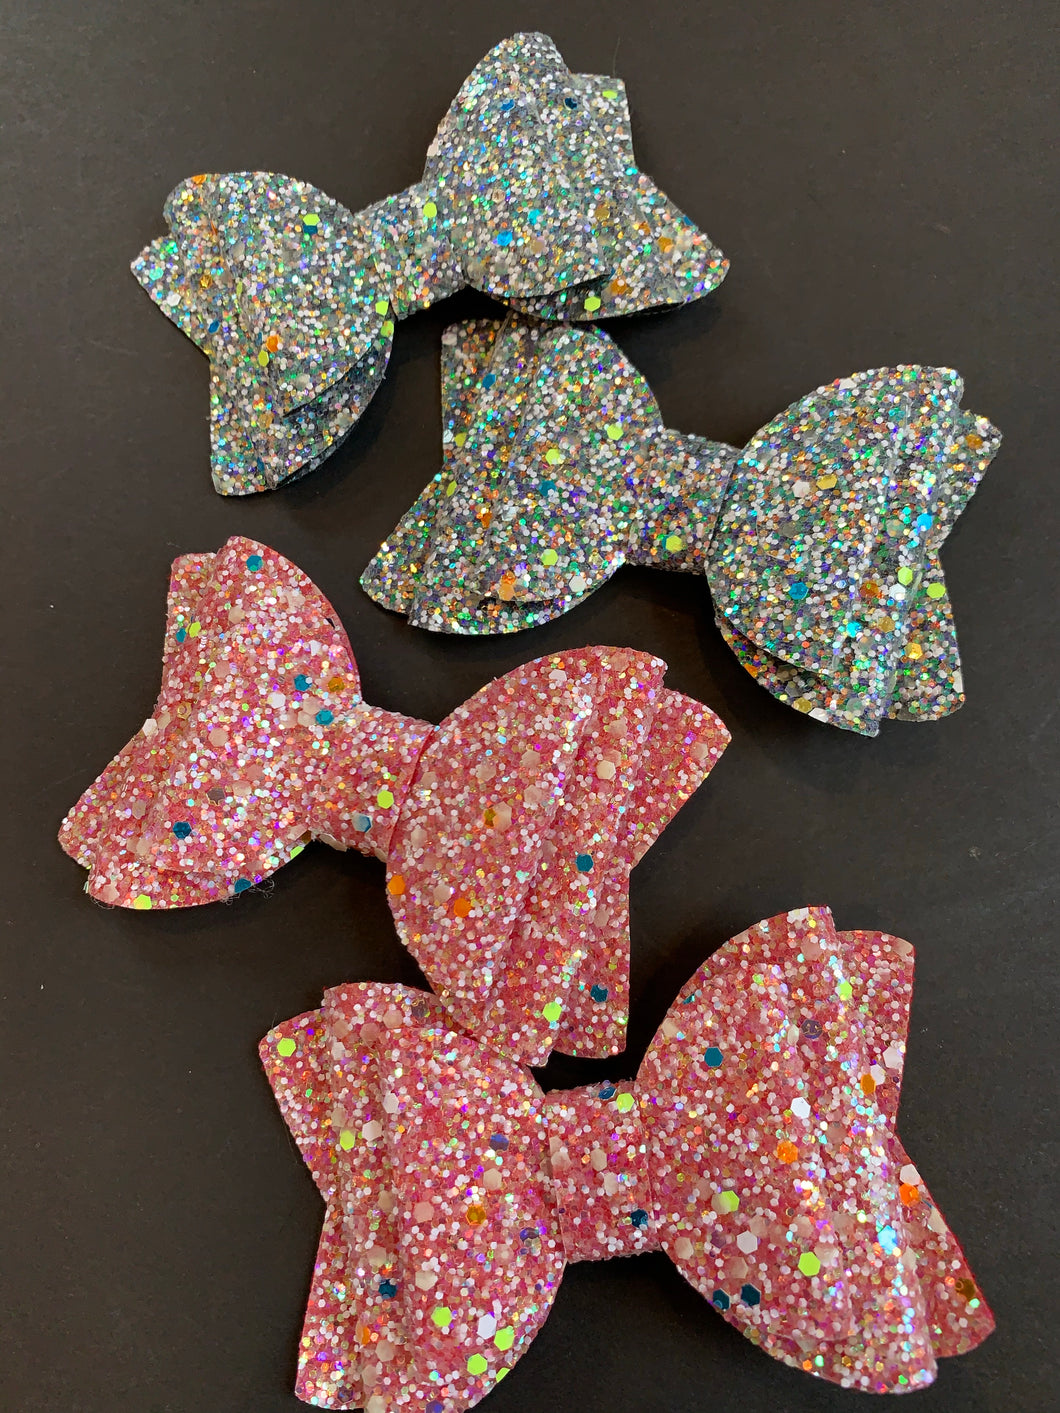 Mutli Glitter Glow in the Dark 4 Inch Bow on Alligator Clip